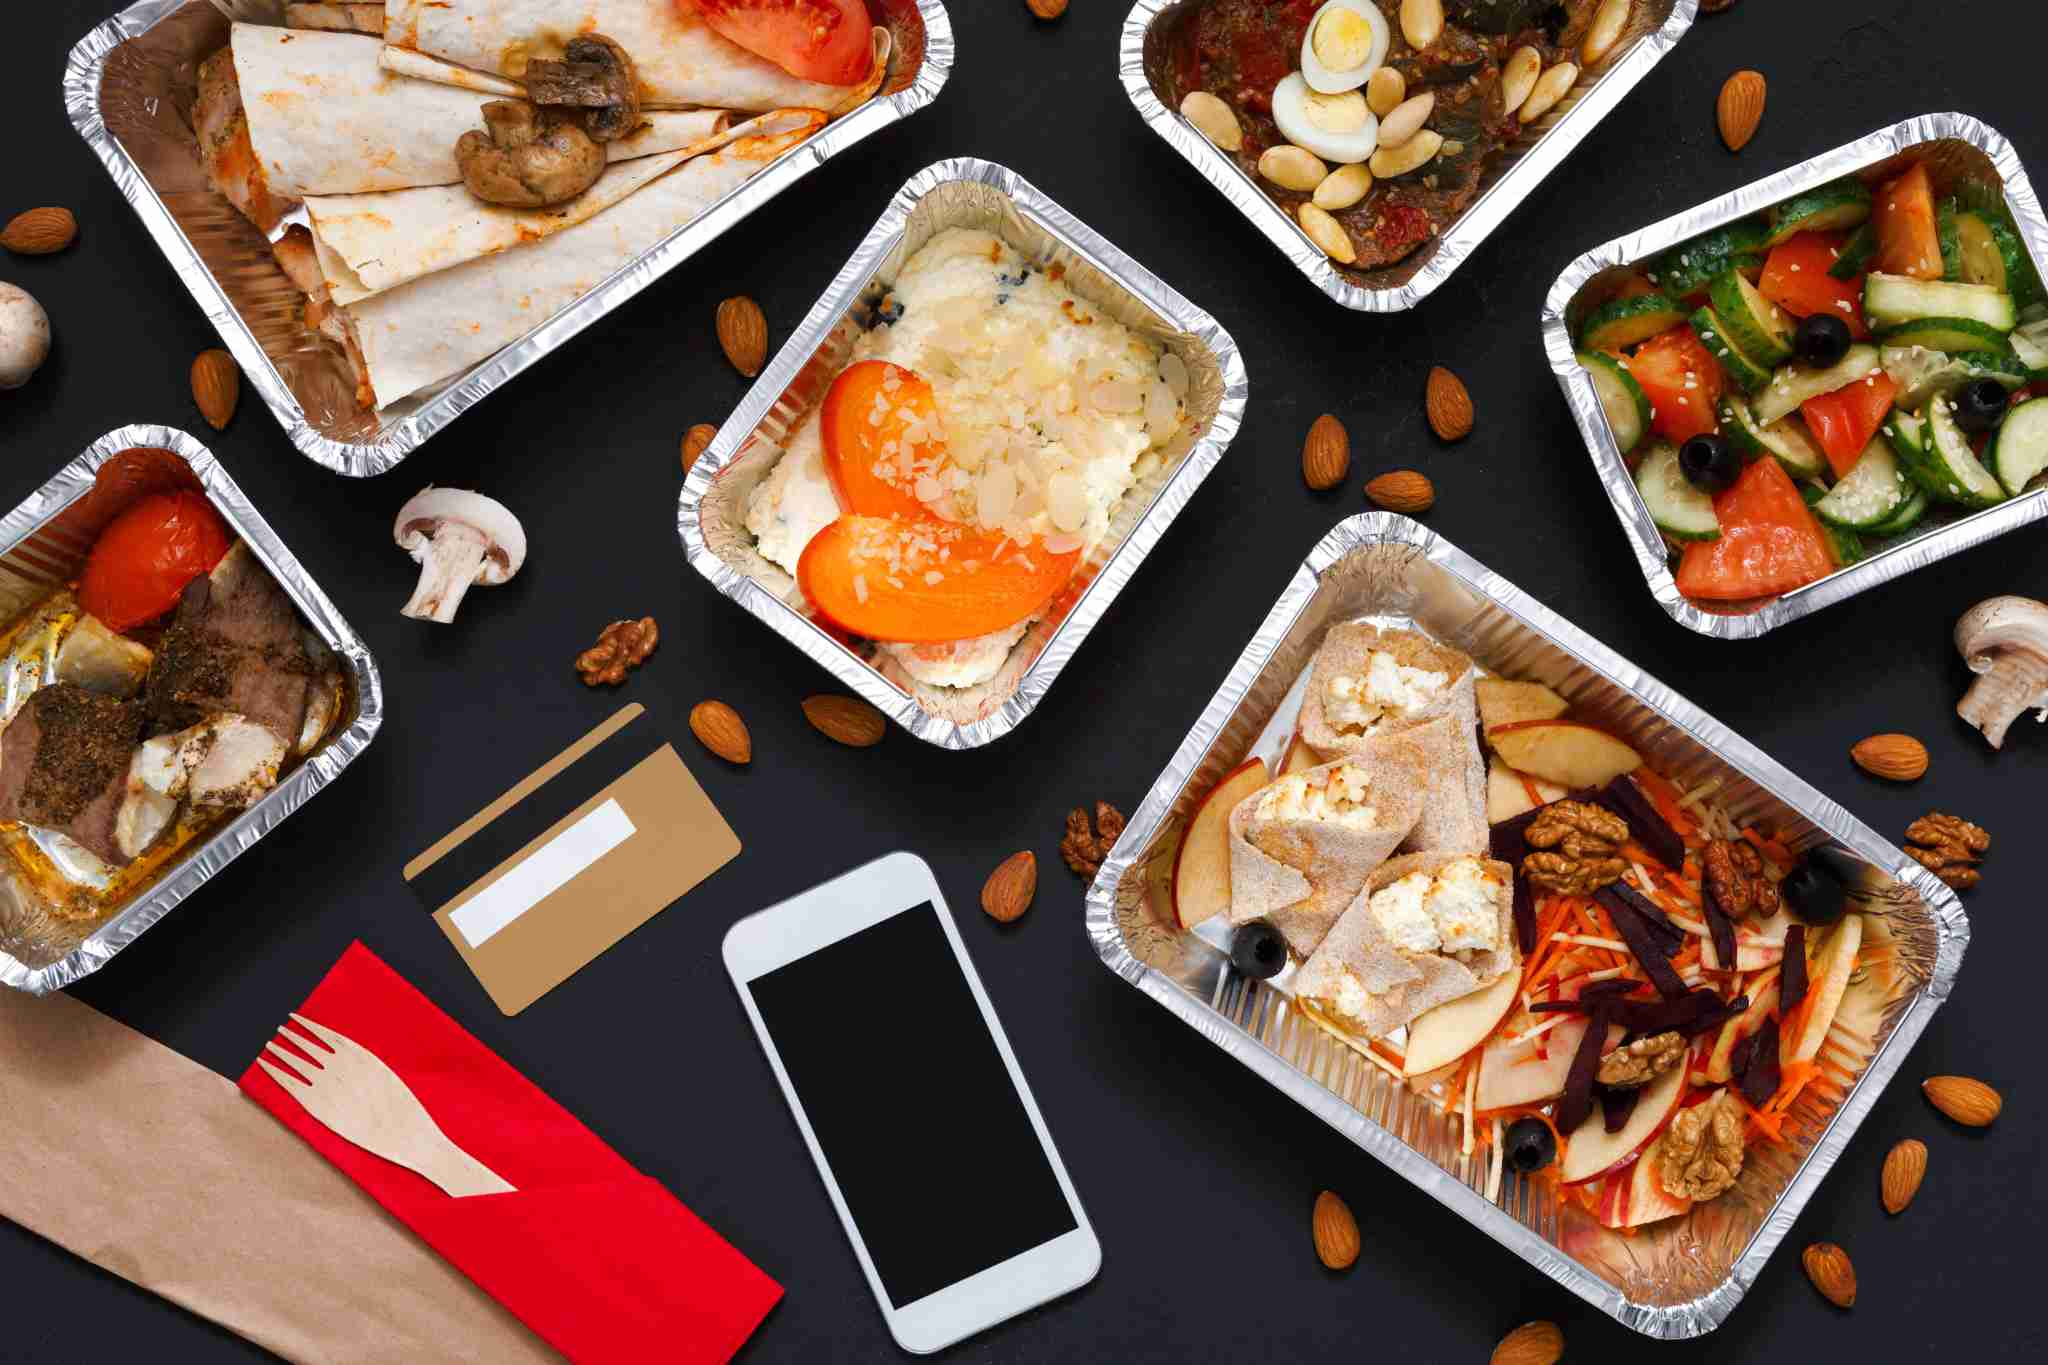 Healthy restaurant food delivery background. Online shopping on smartphone, foil containers with meals on black. Photo by Getty Images